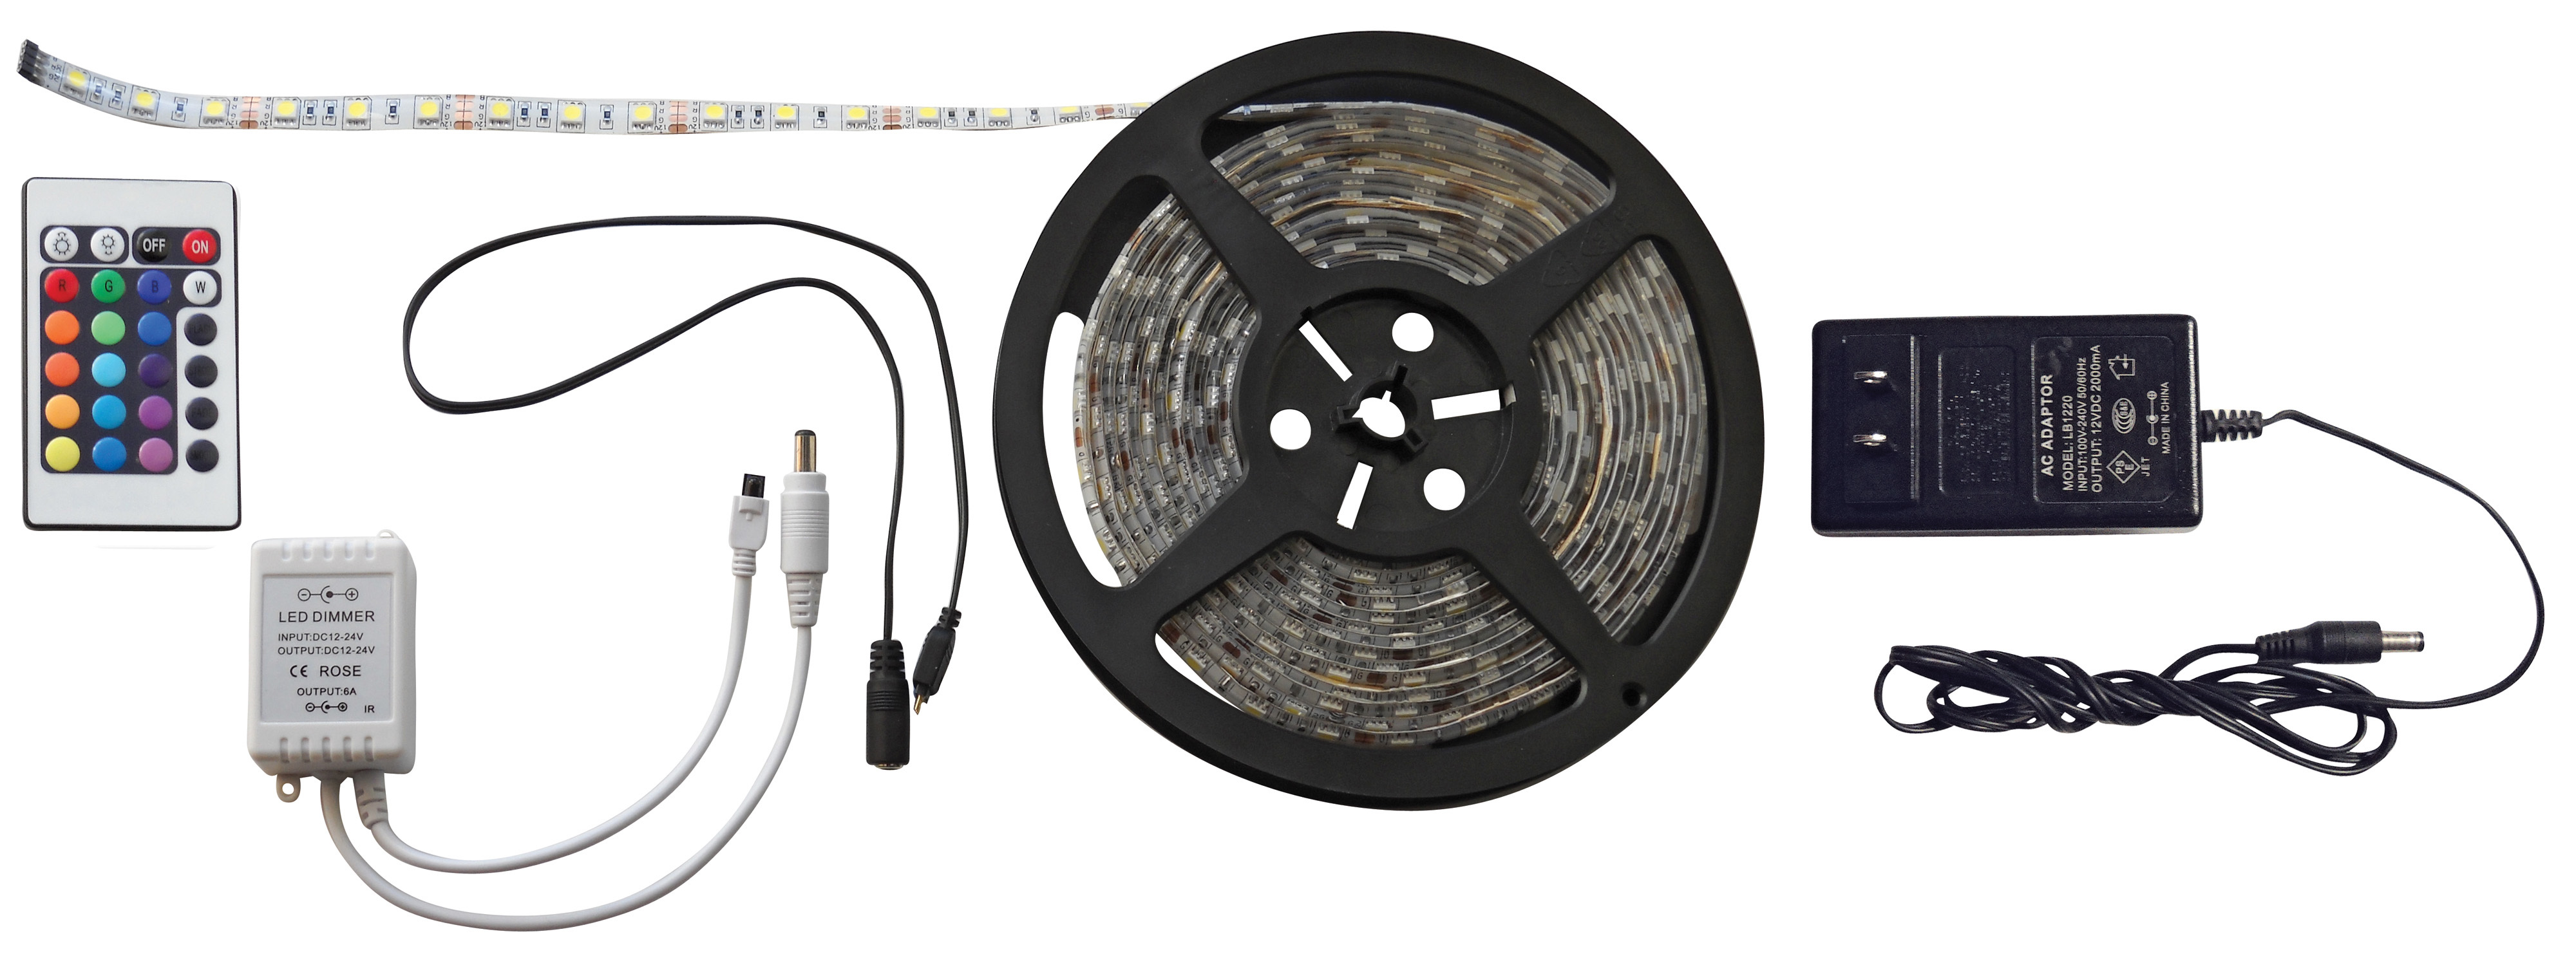 16 Foot RGB LED Strip Light Kit 52688